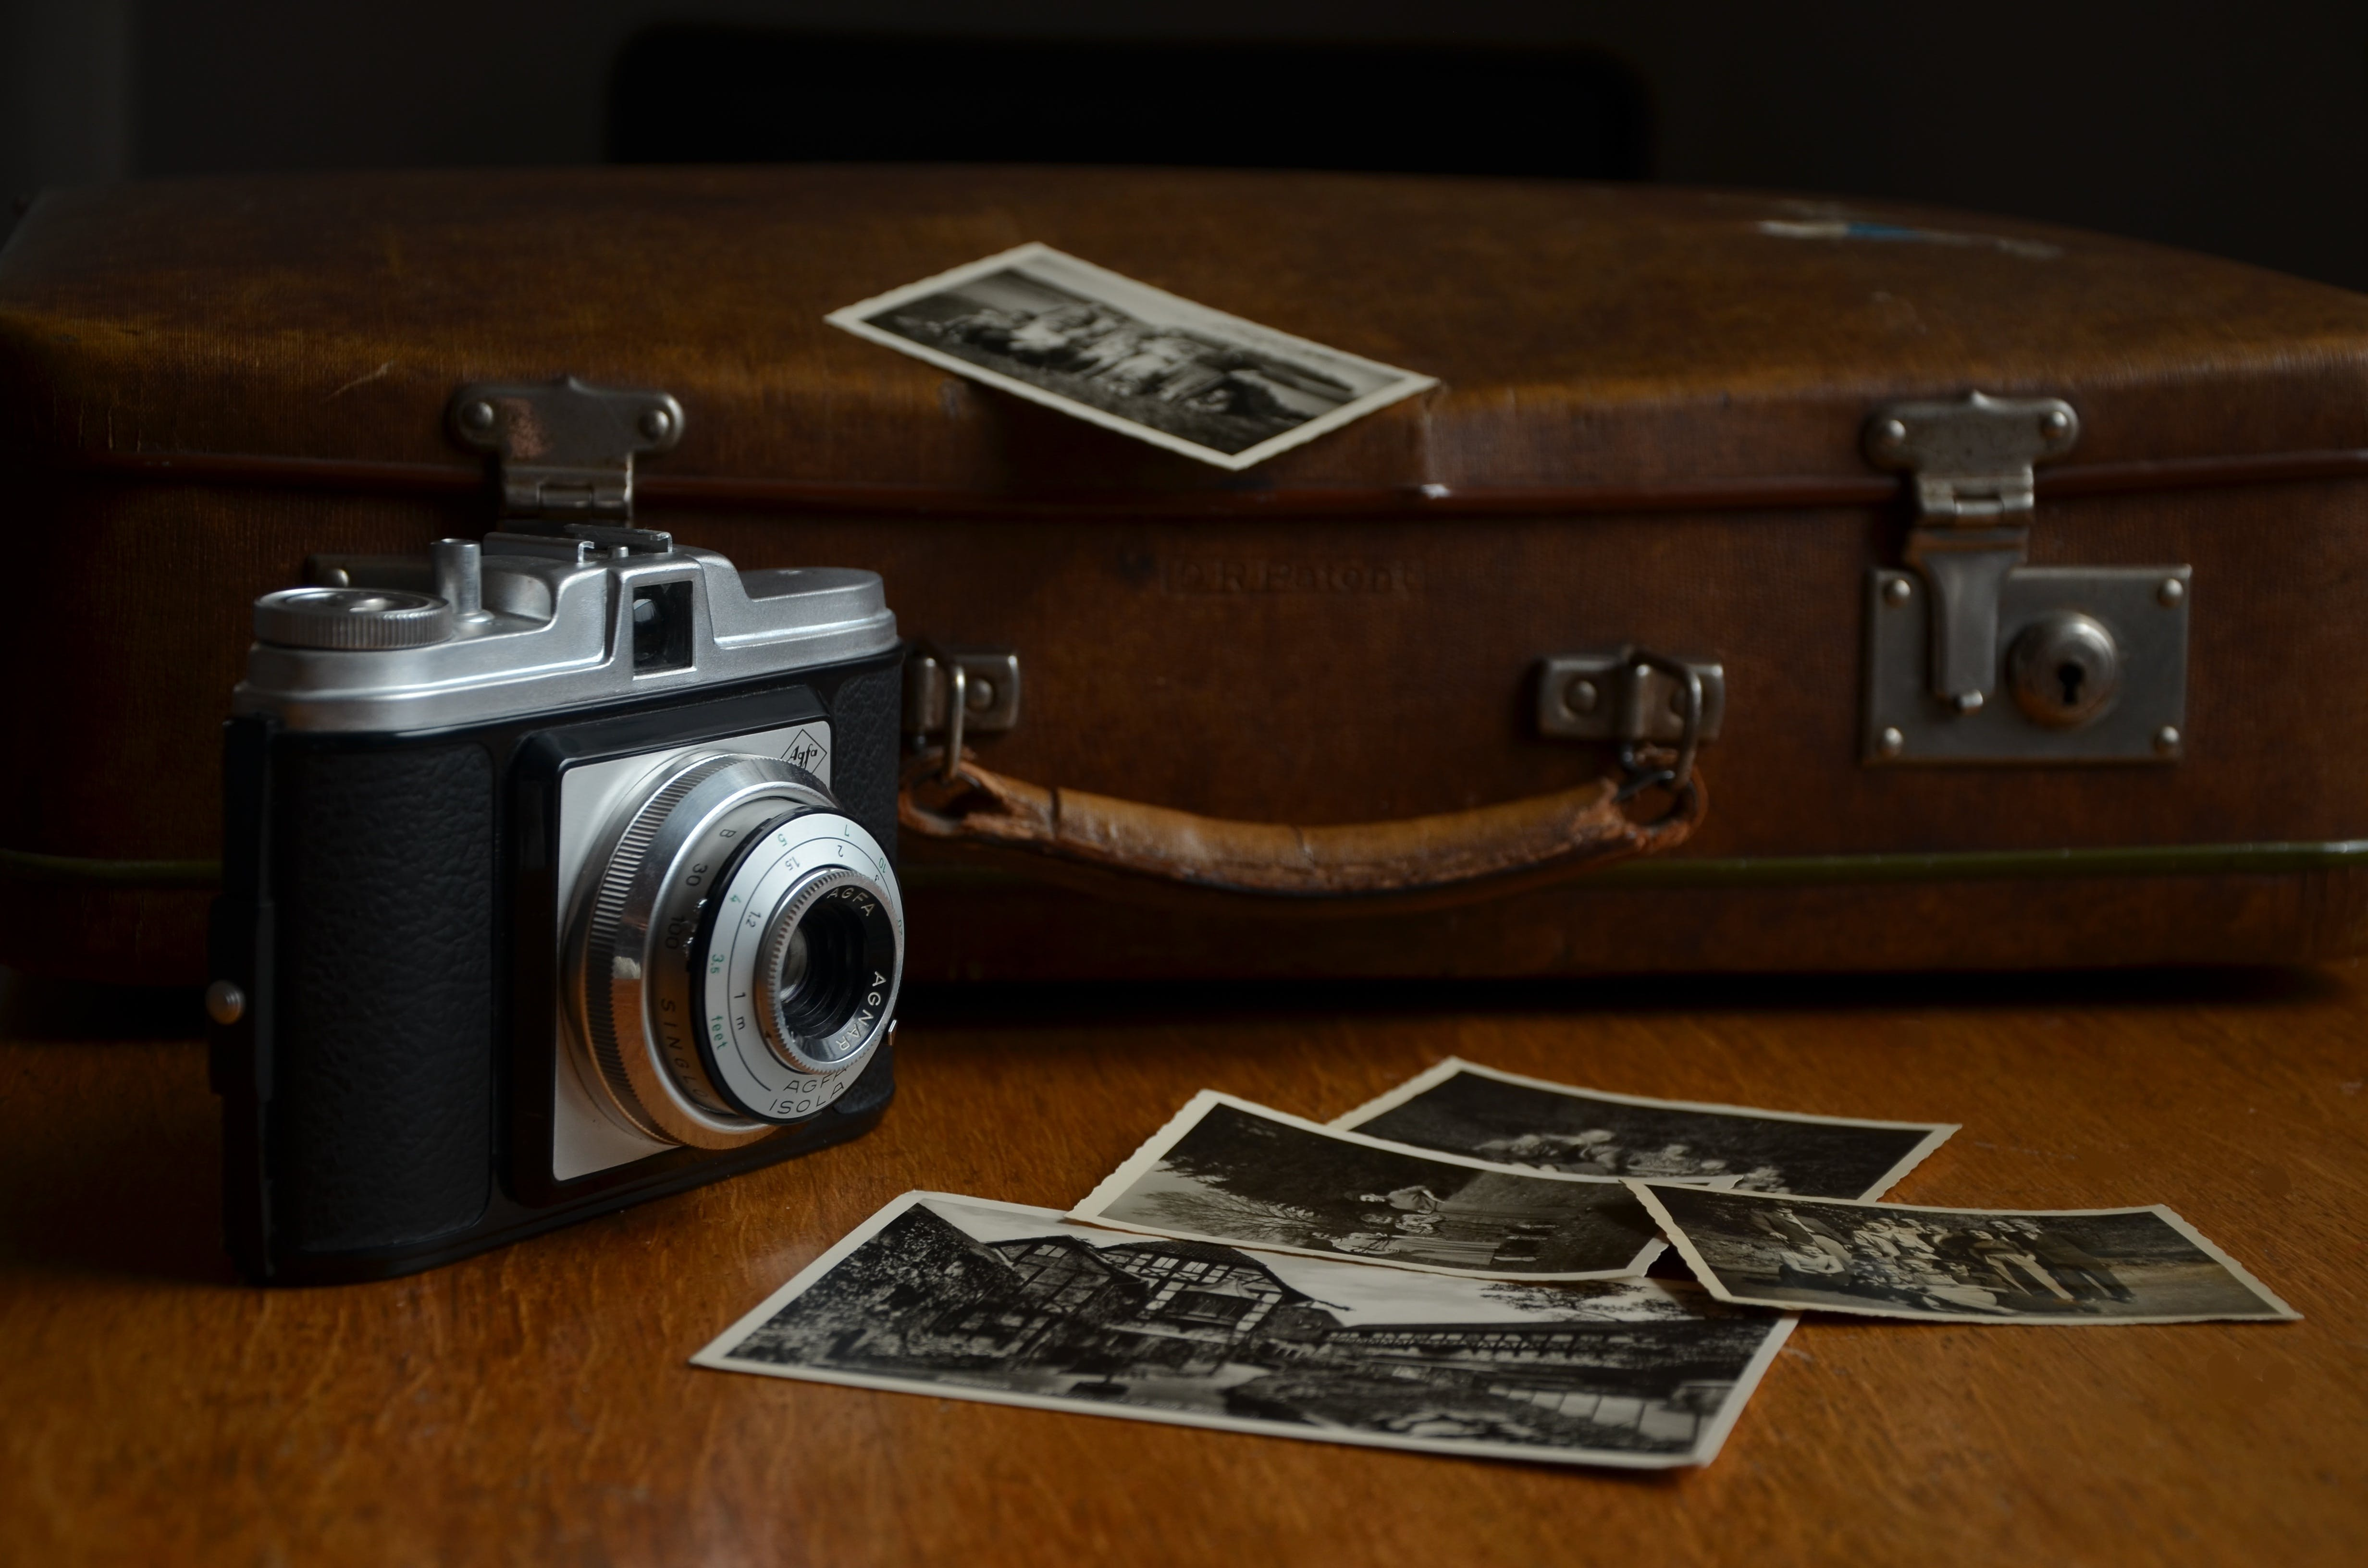 Black and Gray Camera Beside Photos